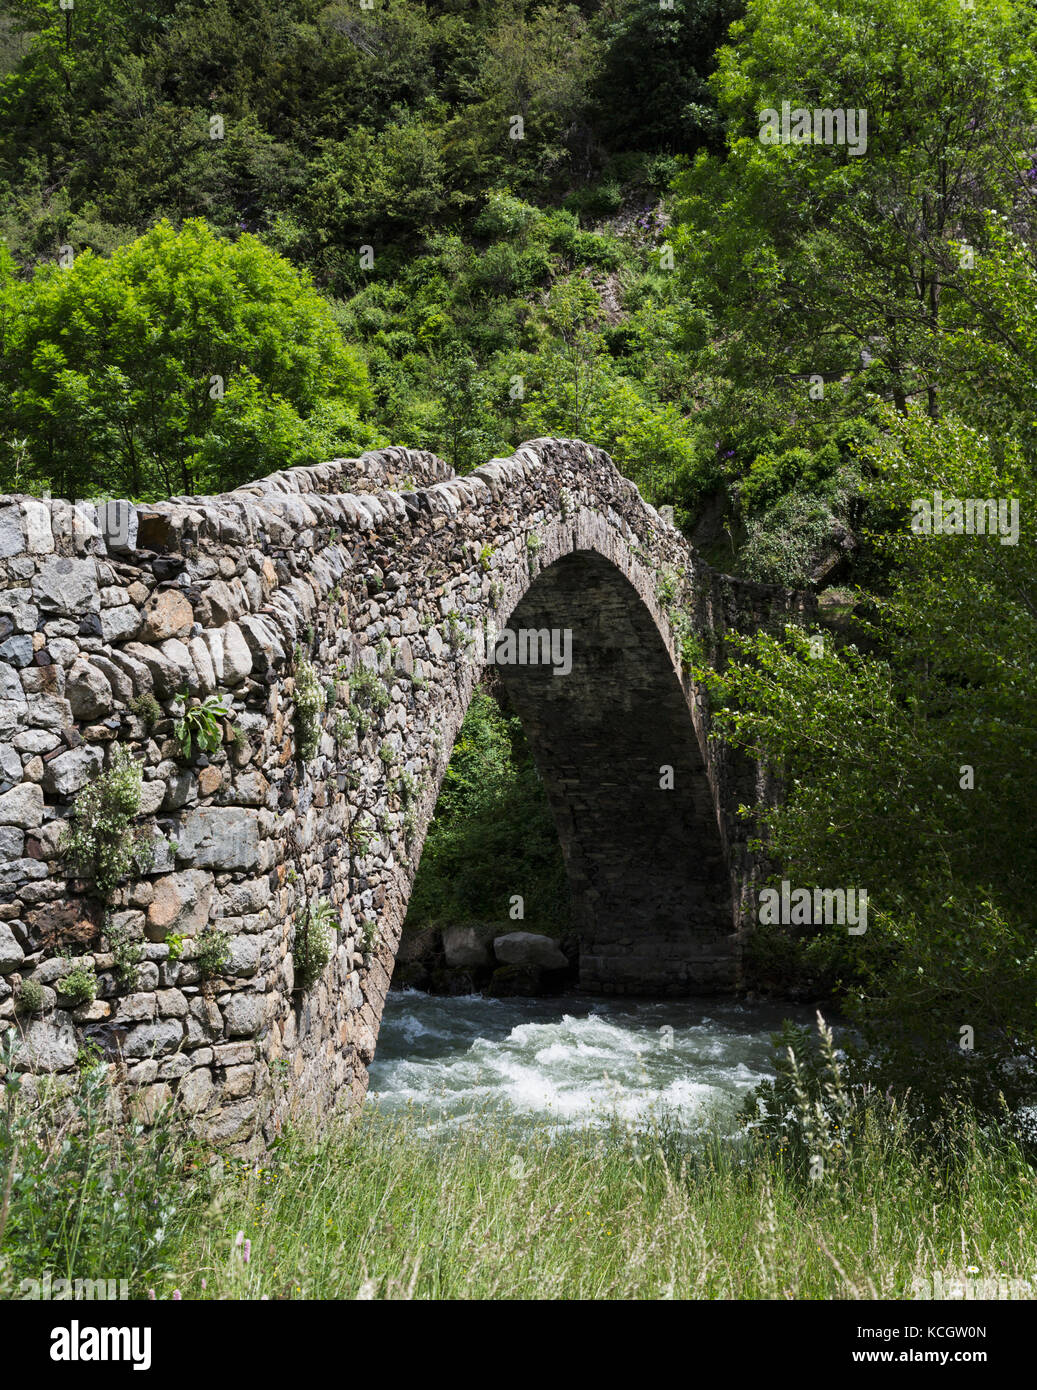 Principality of Andorra.  Pont de la Margineda, or La Margineda Bridge at La Margineda.  The single arch hump-backed - Stock Image